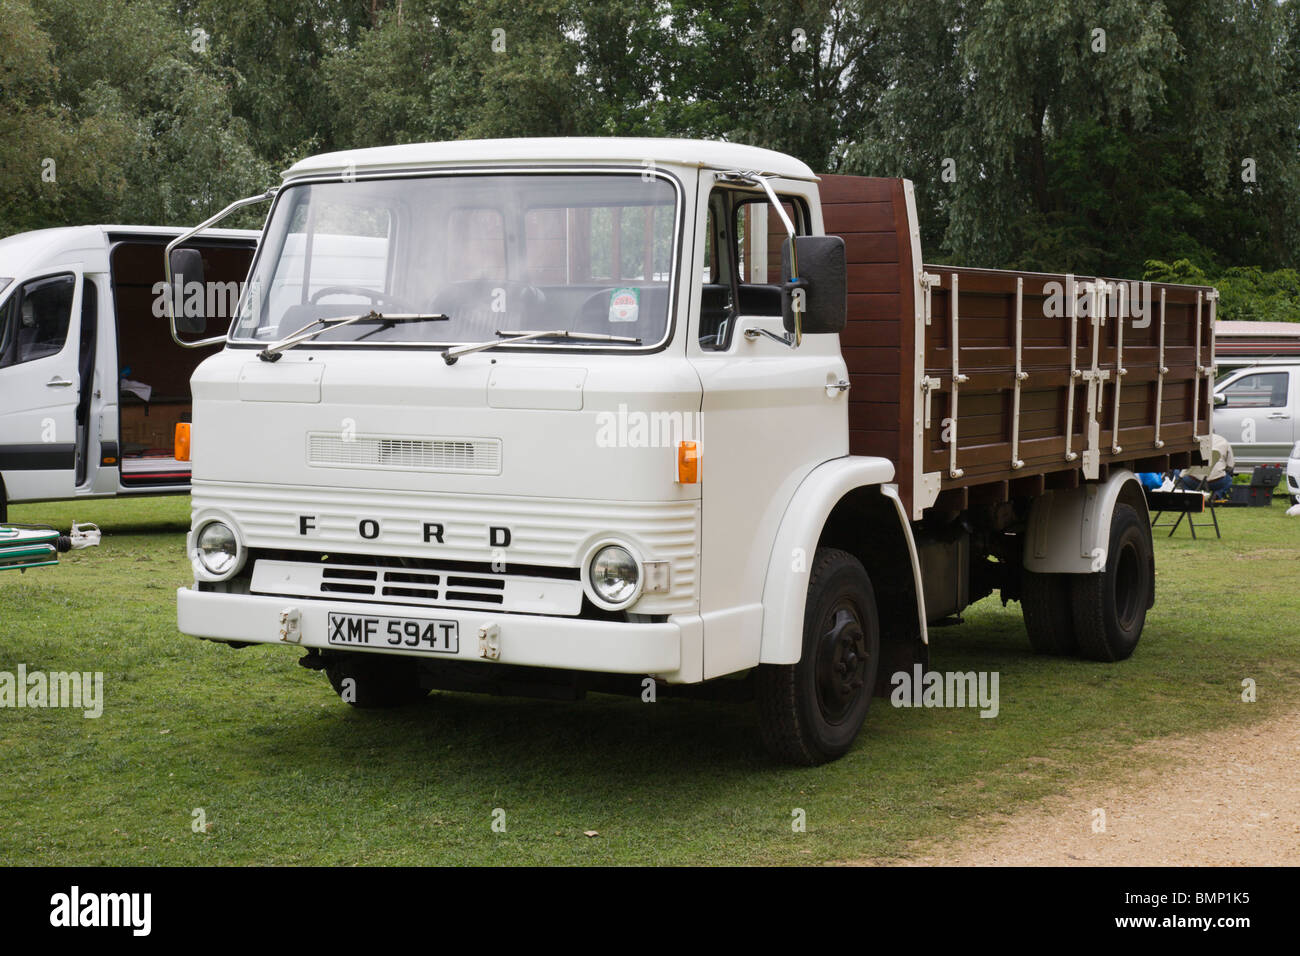 A Vintage Ford Lorry Stock Photo 29987753 Alamy